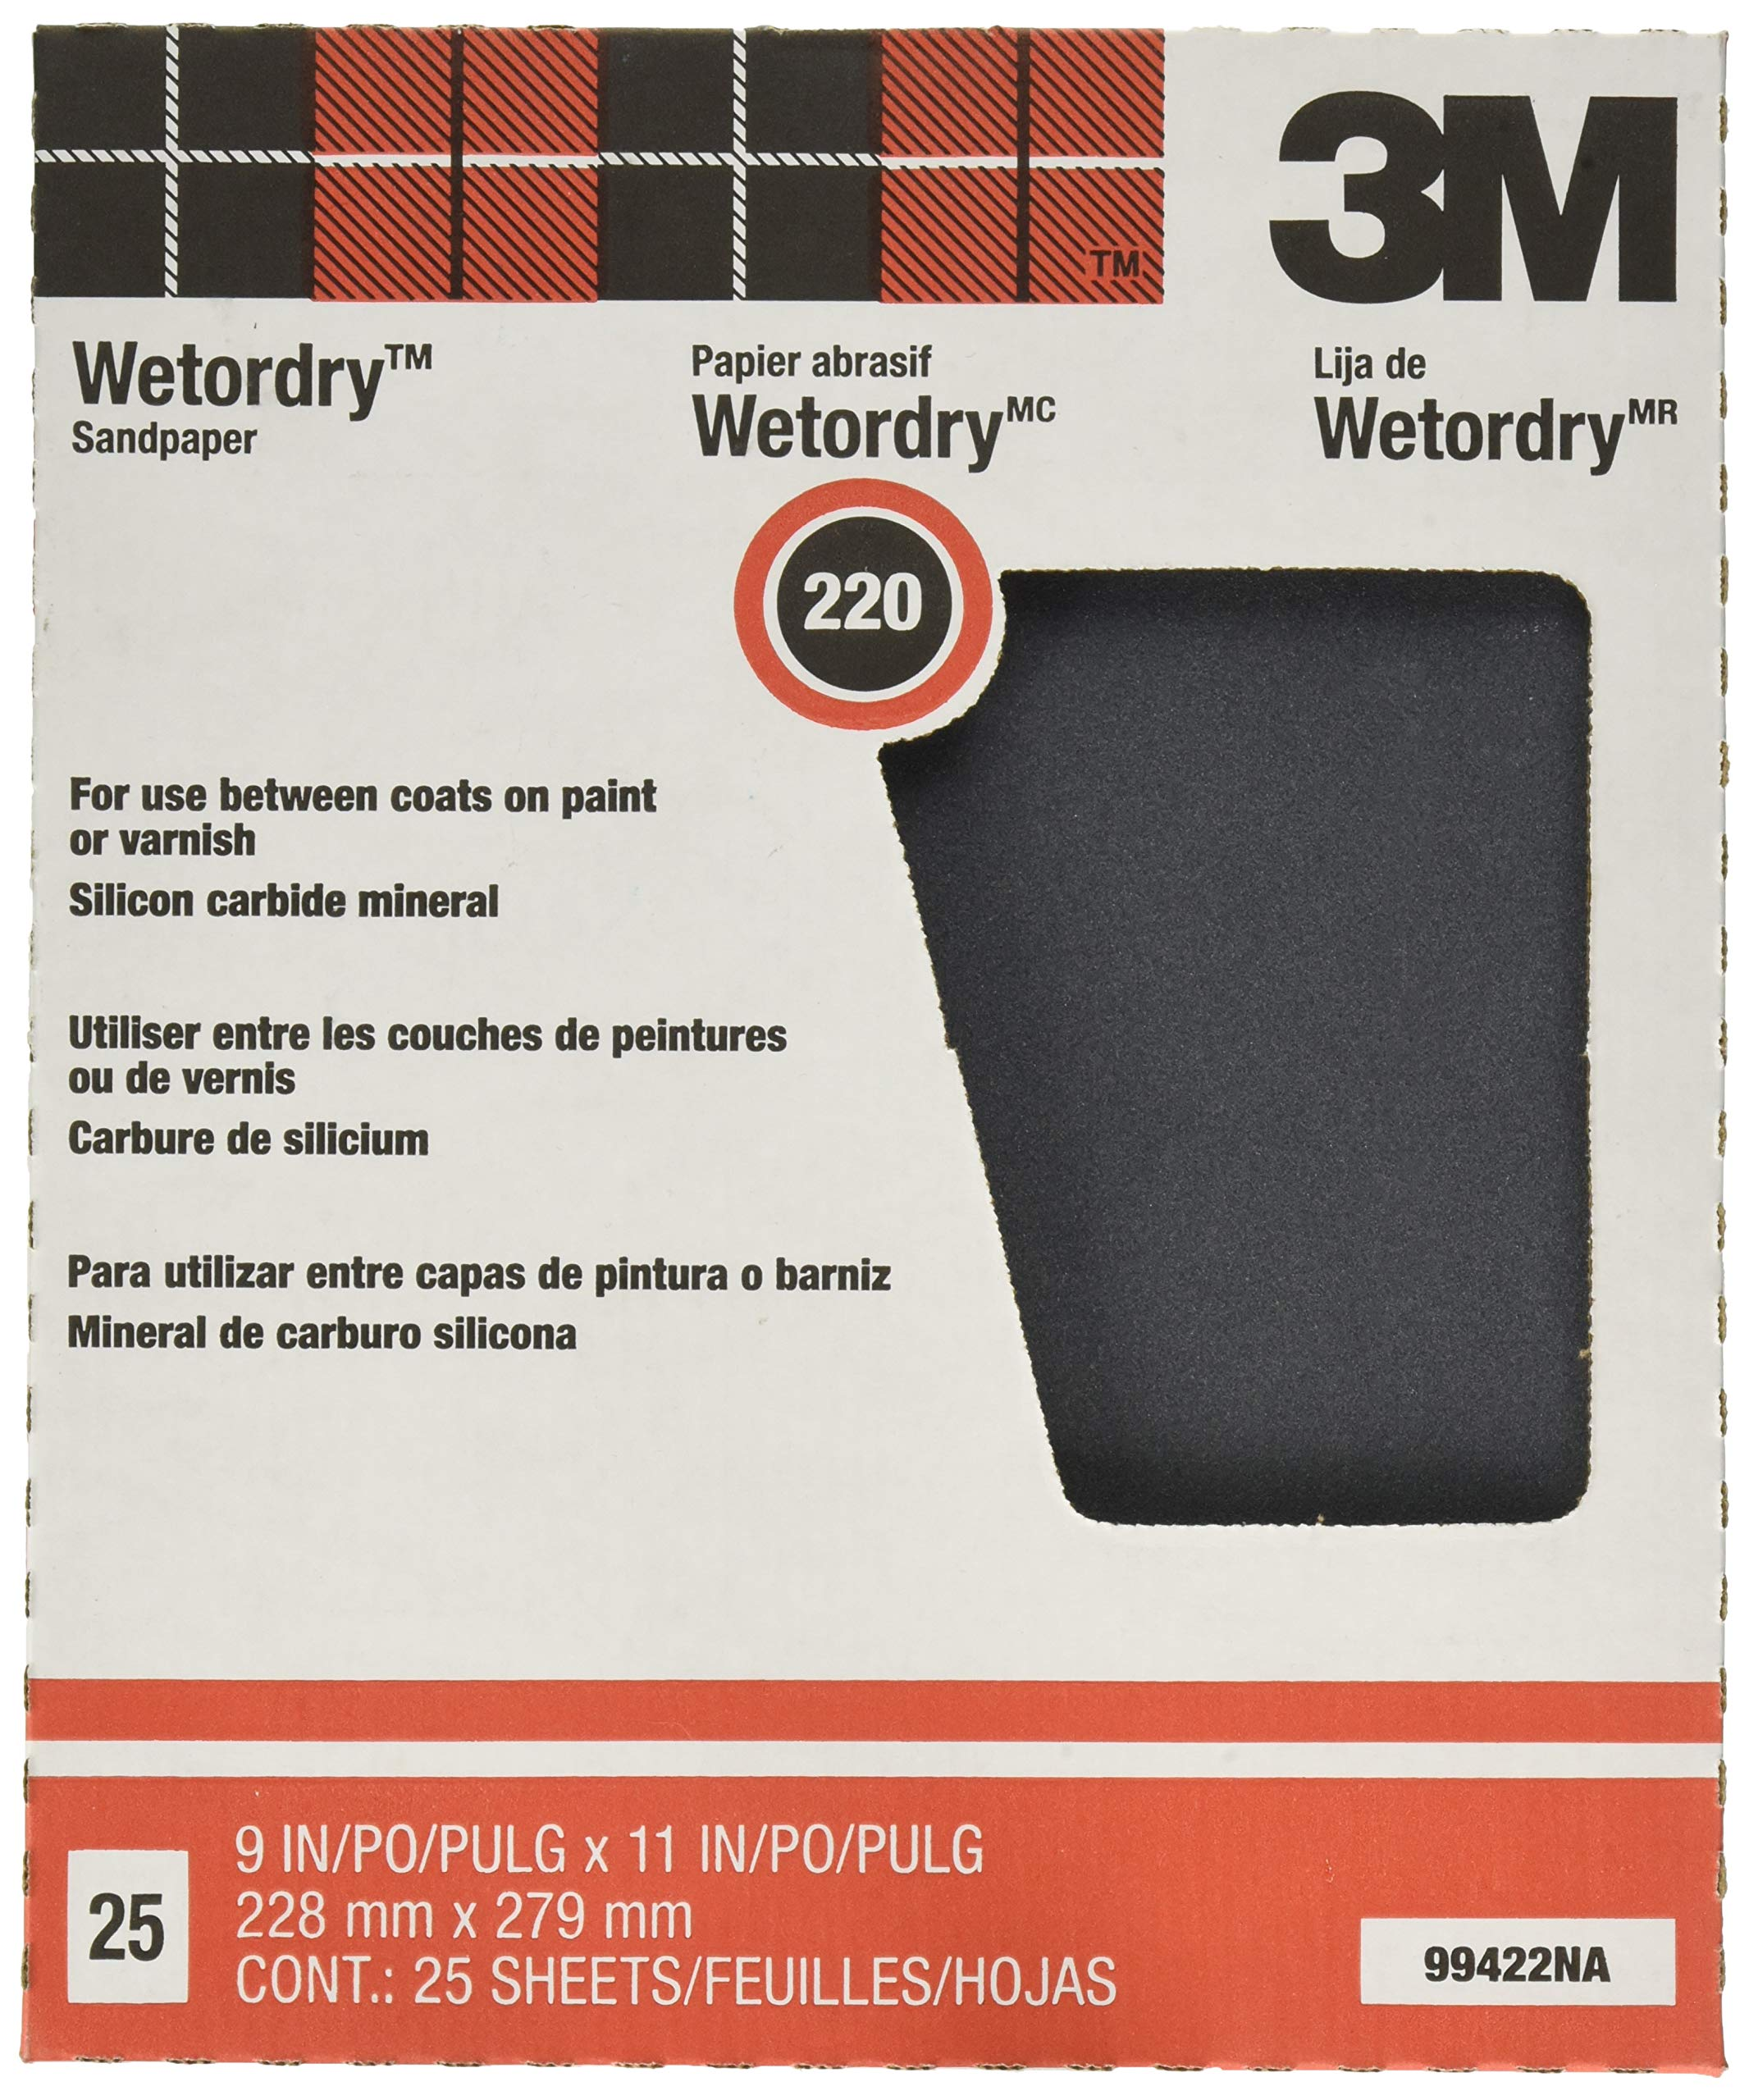 3M Pro-Pak Wetordry Sanding Sheets, 220A-Grit, 9-Inch by 11-Inch,1 Pack of 25 by 3M